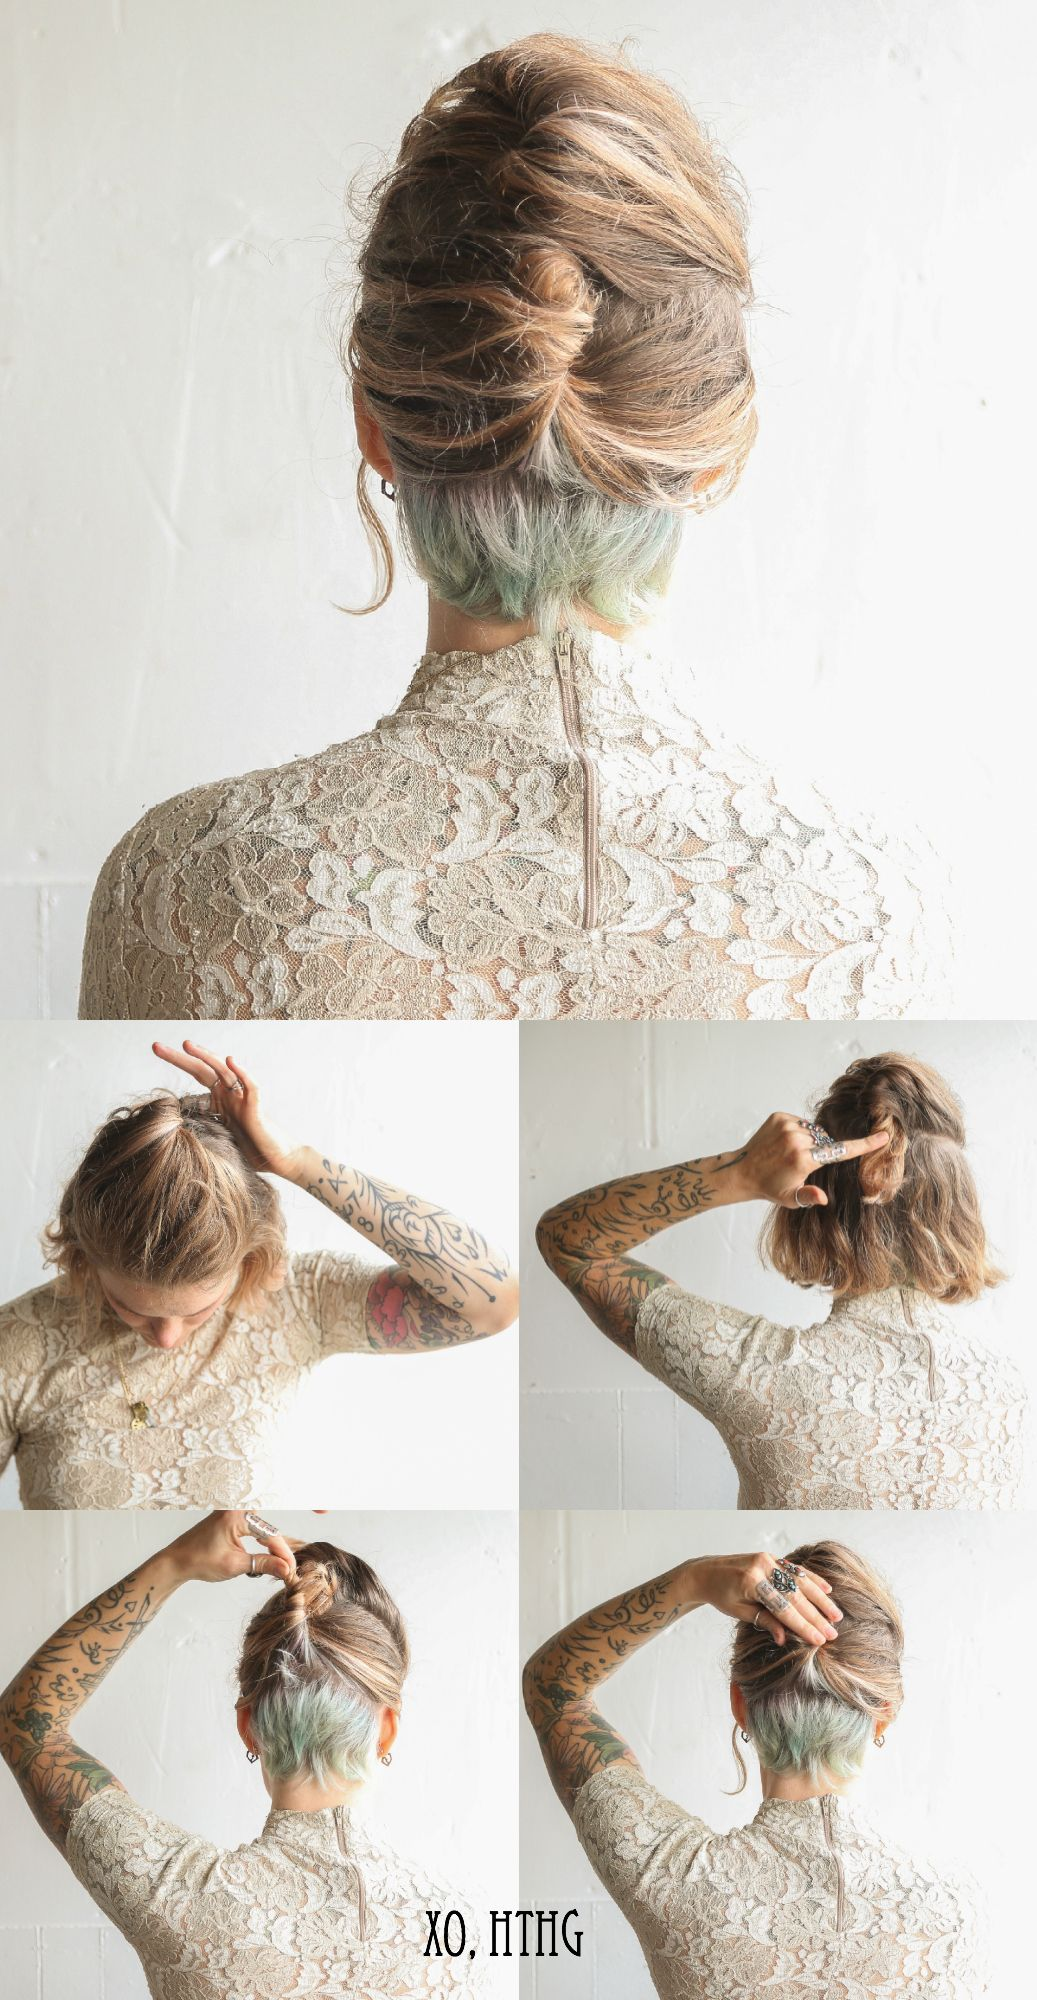 this is all i need. Ill die my undercut some bright color and be all ...